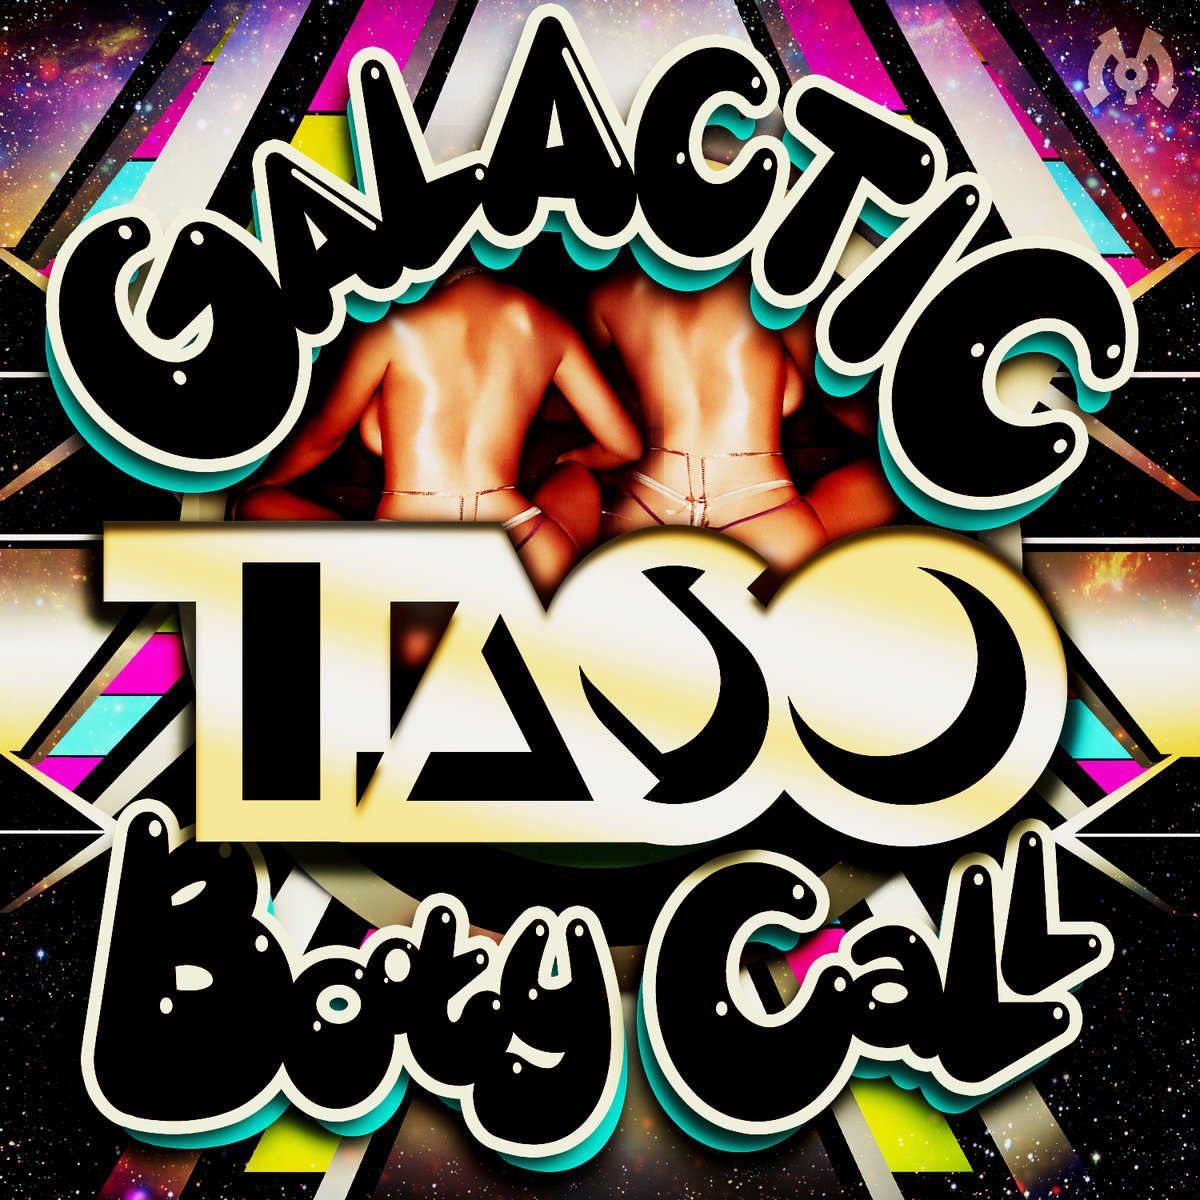 Taso - Galatic Booty Call